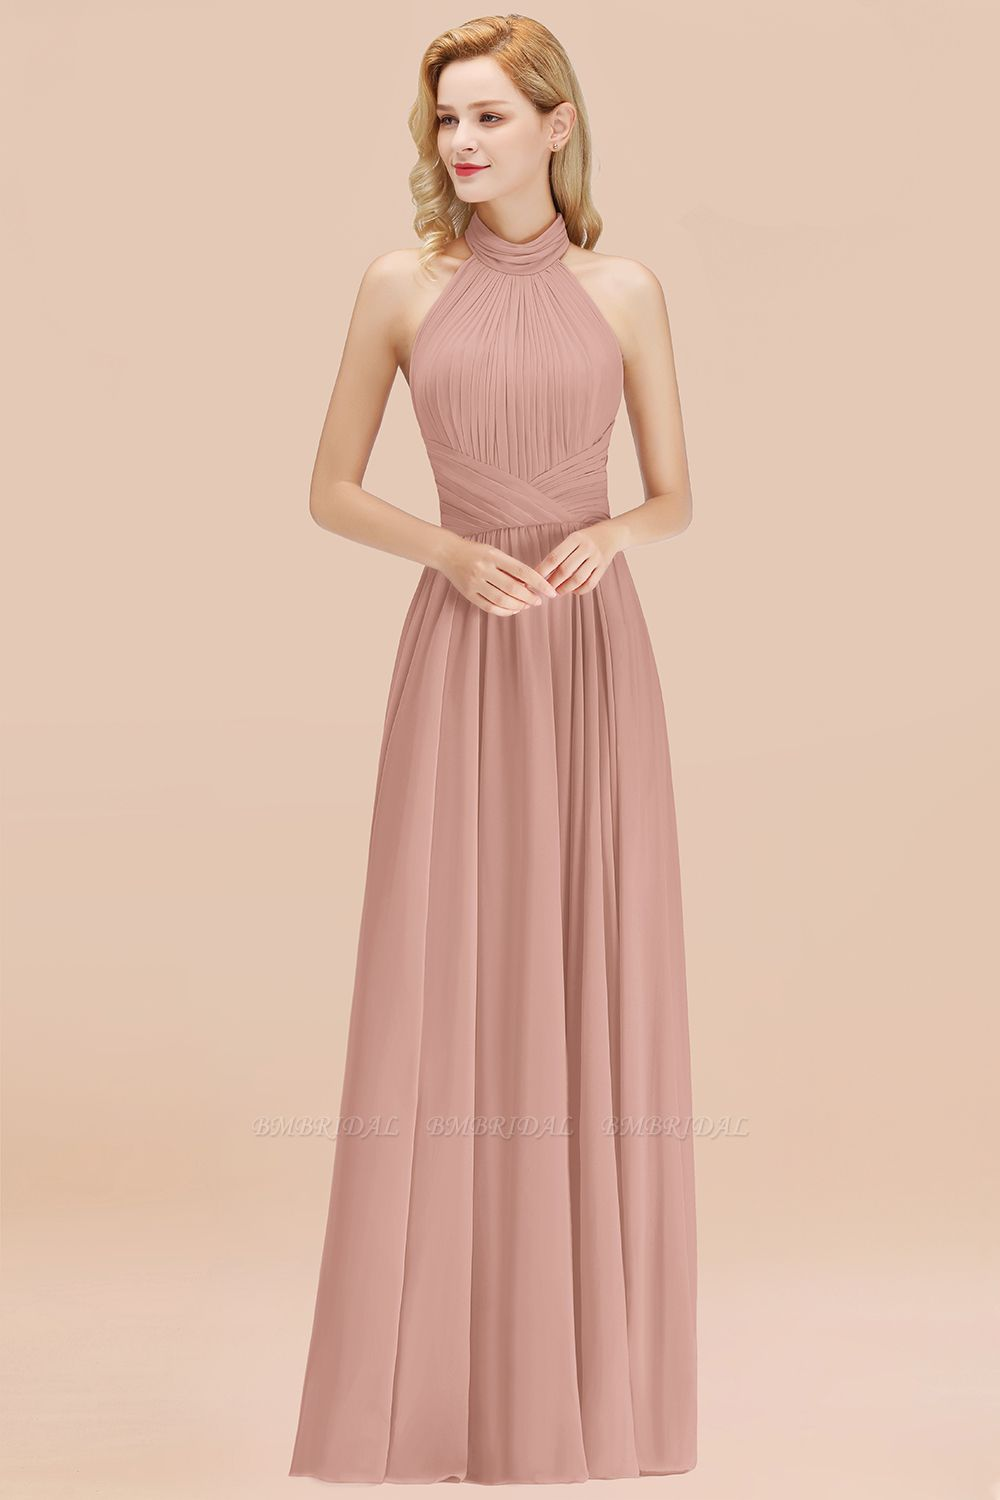 Gorgeous High-Neck Halter Backless Bridesmaid Dress Dusty Rose Chiffon Maid of Honor Dress